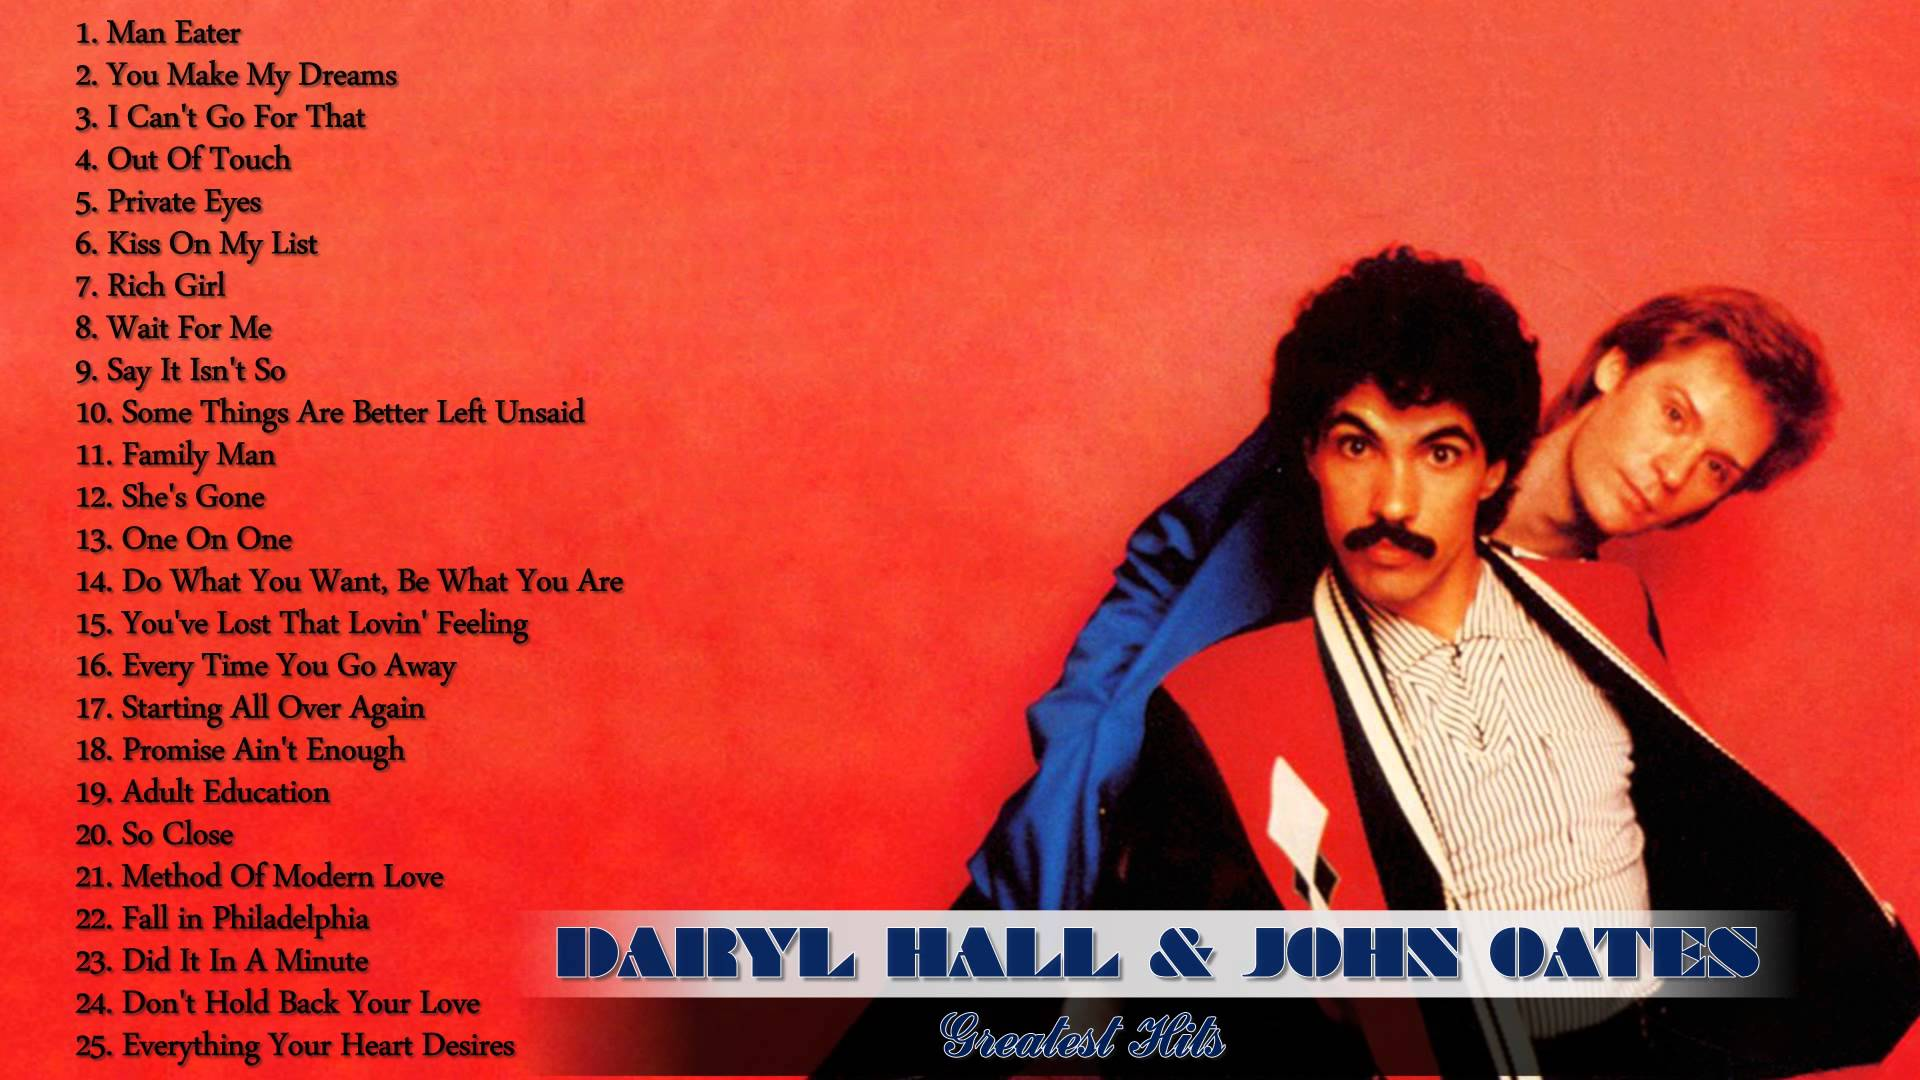 the best of daryl hall john oates reviews music reviews songs trailers mp3 songs cast. Black Bedroom Furniture Sets. Home Design Ideas